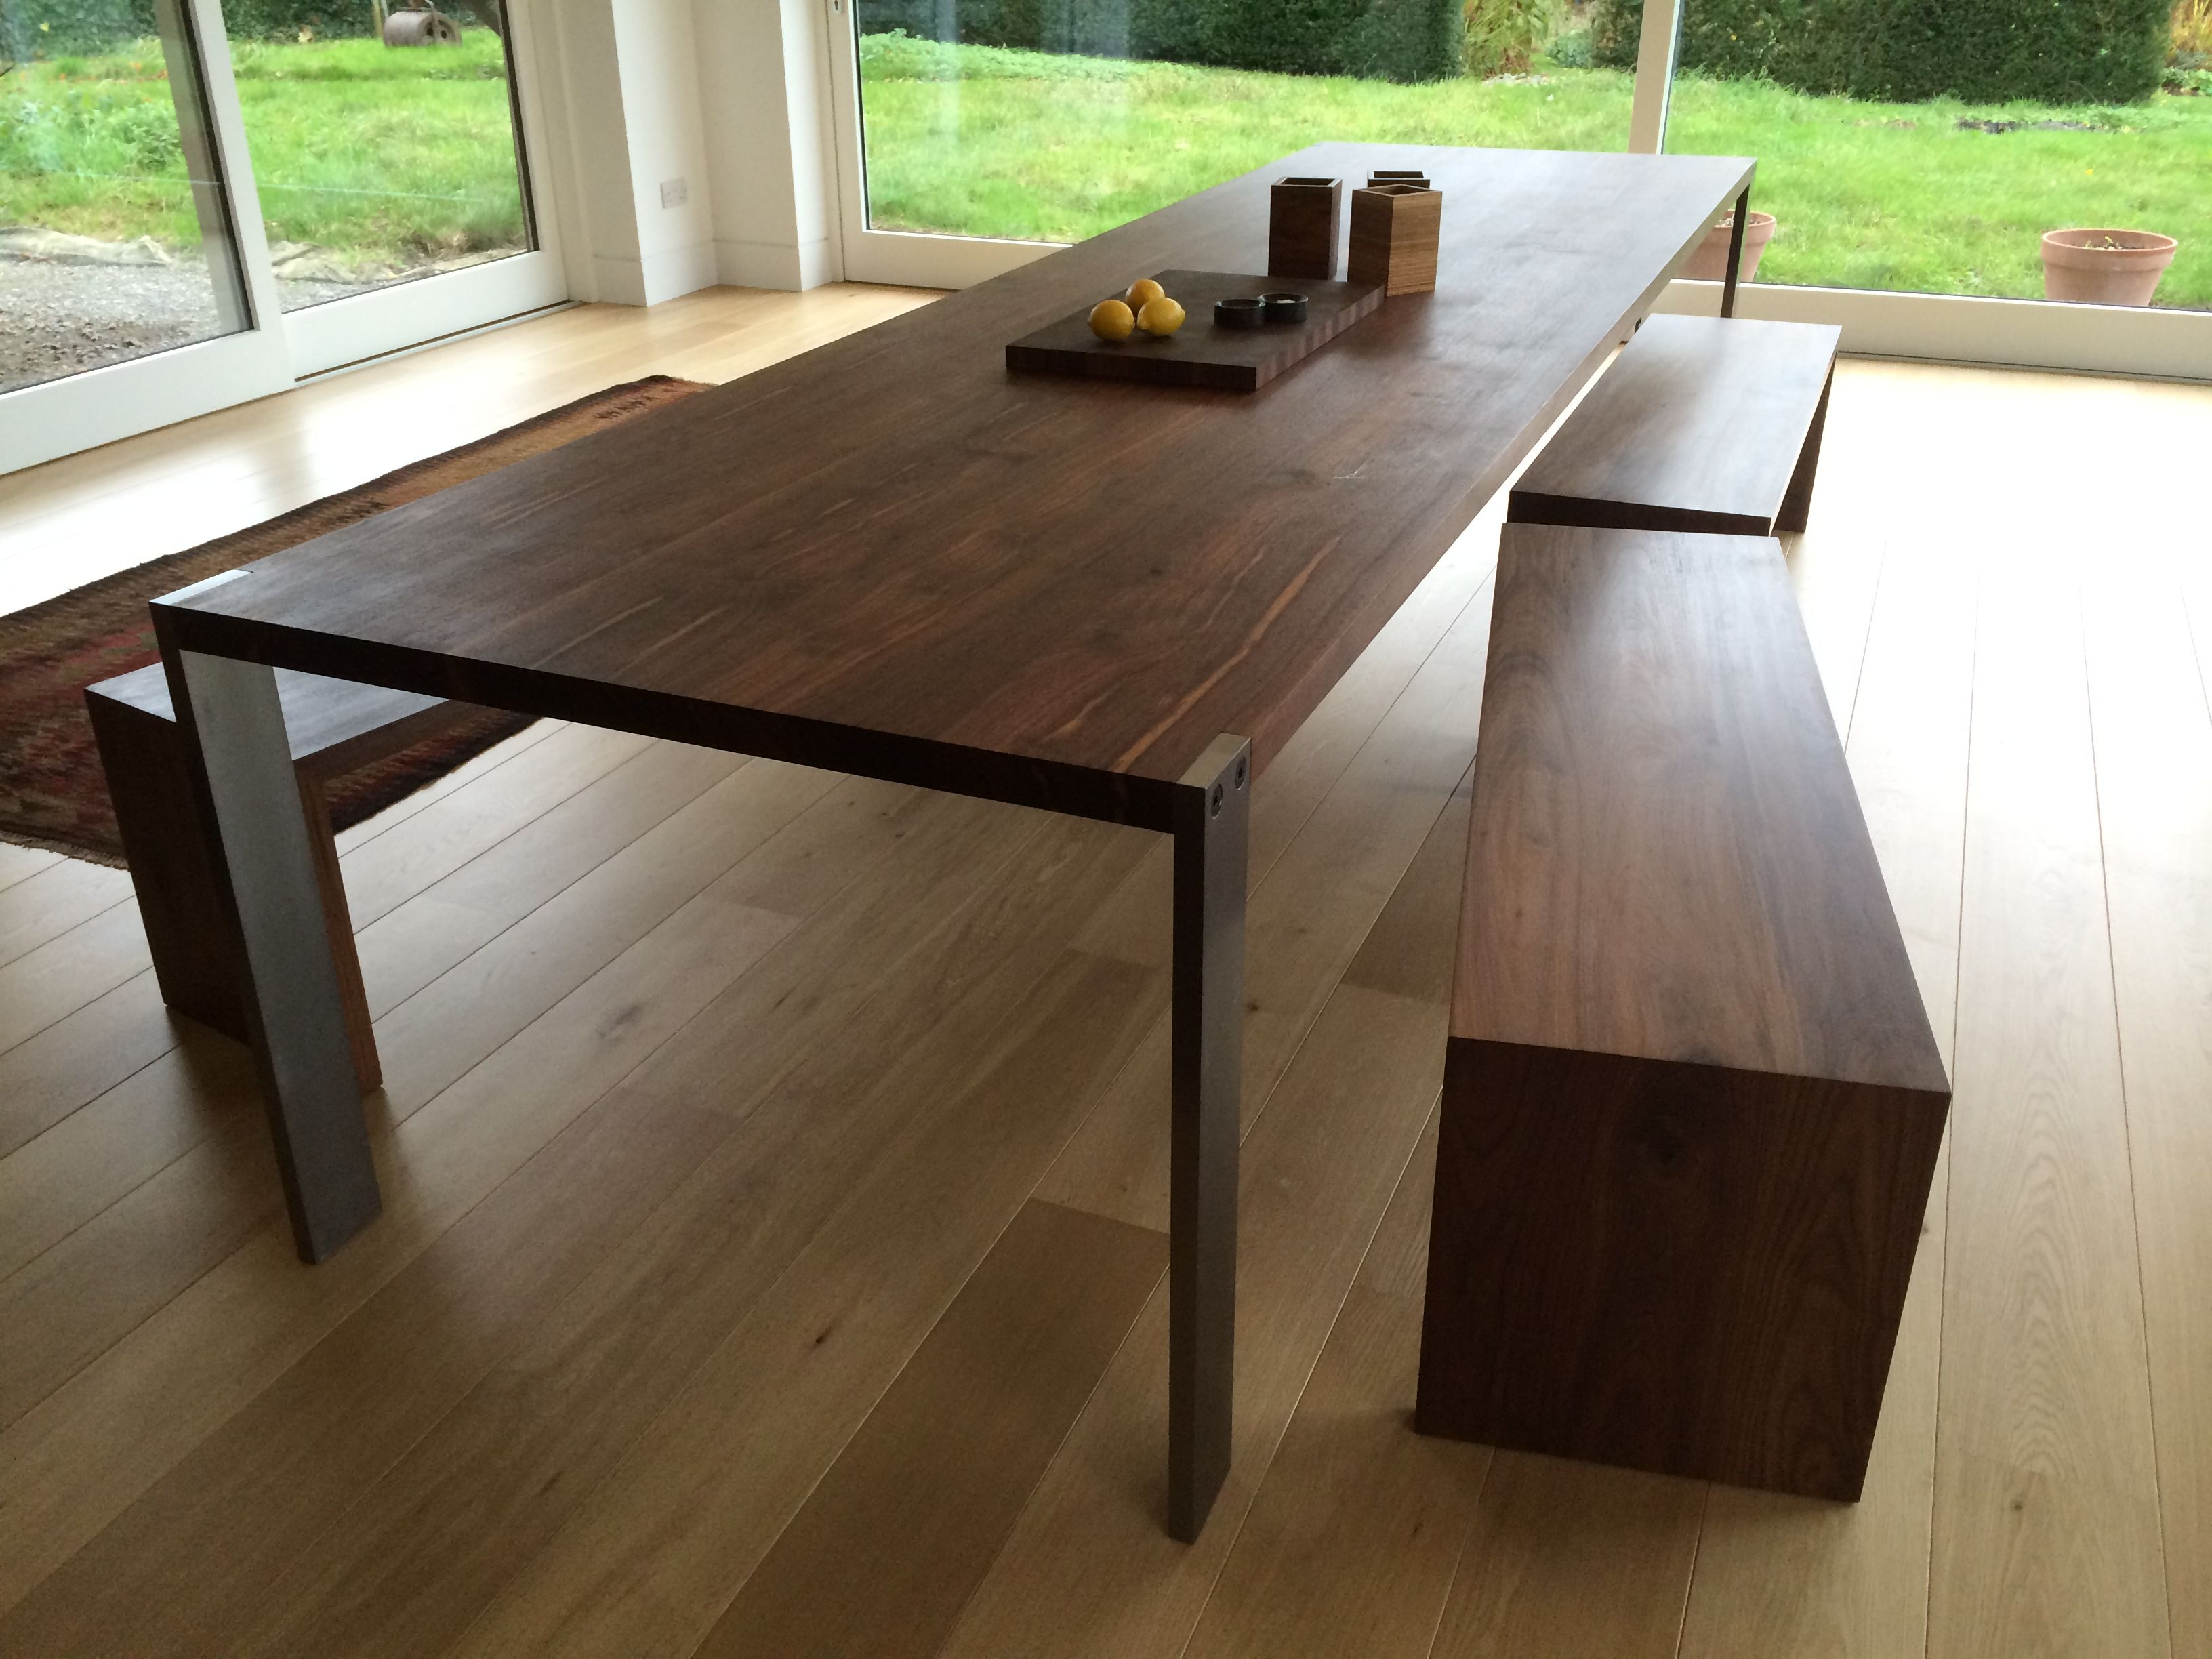 Solid Walnut Dining Table With Stainless Steel Legs & Solid